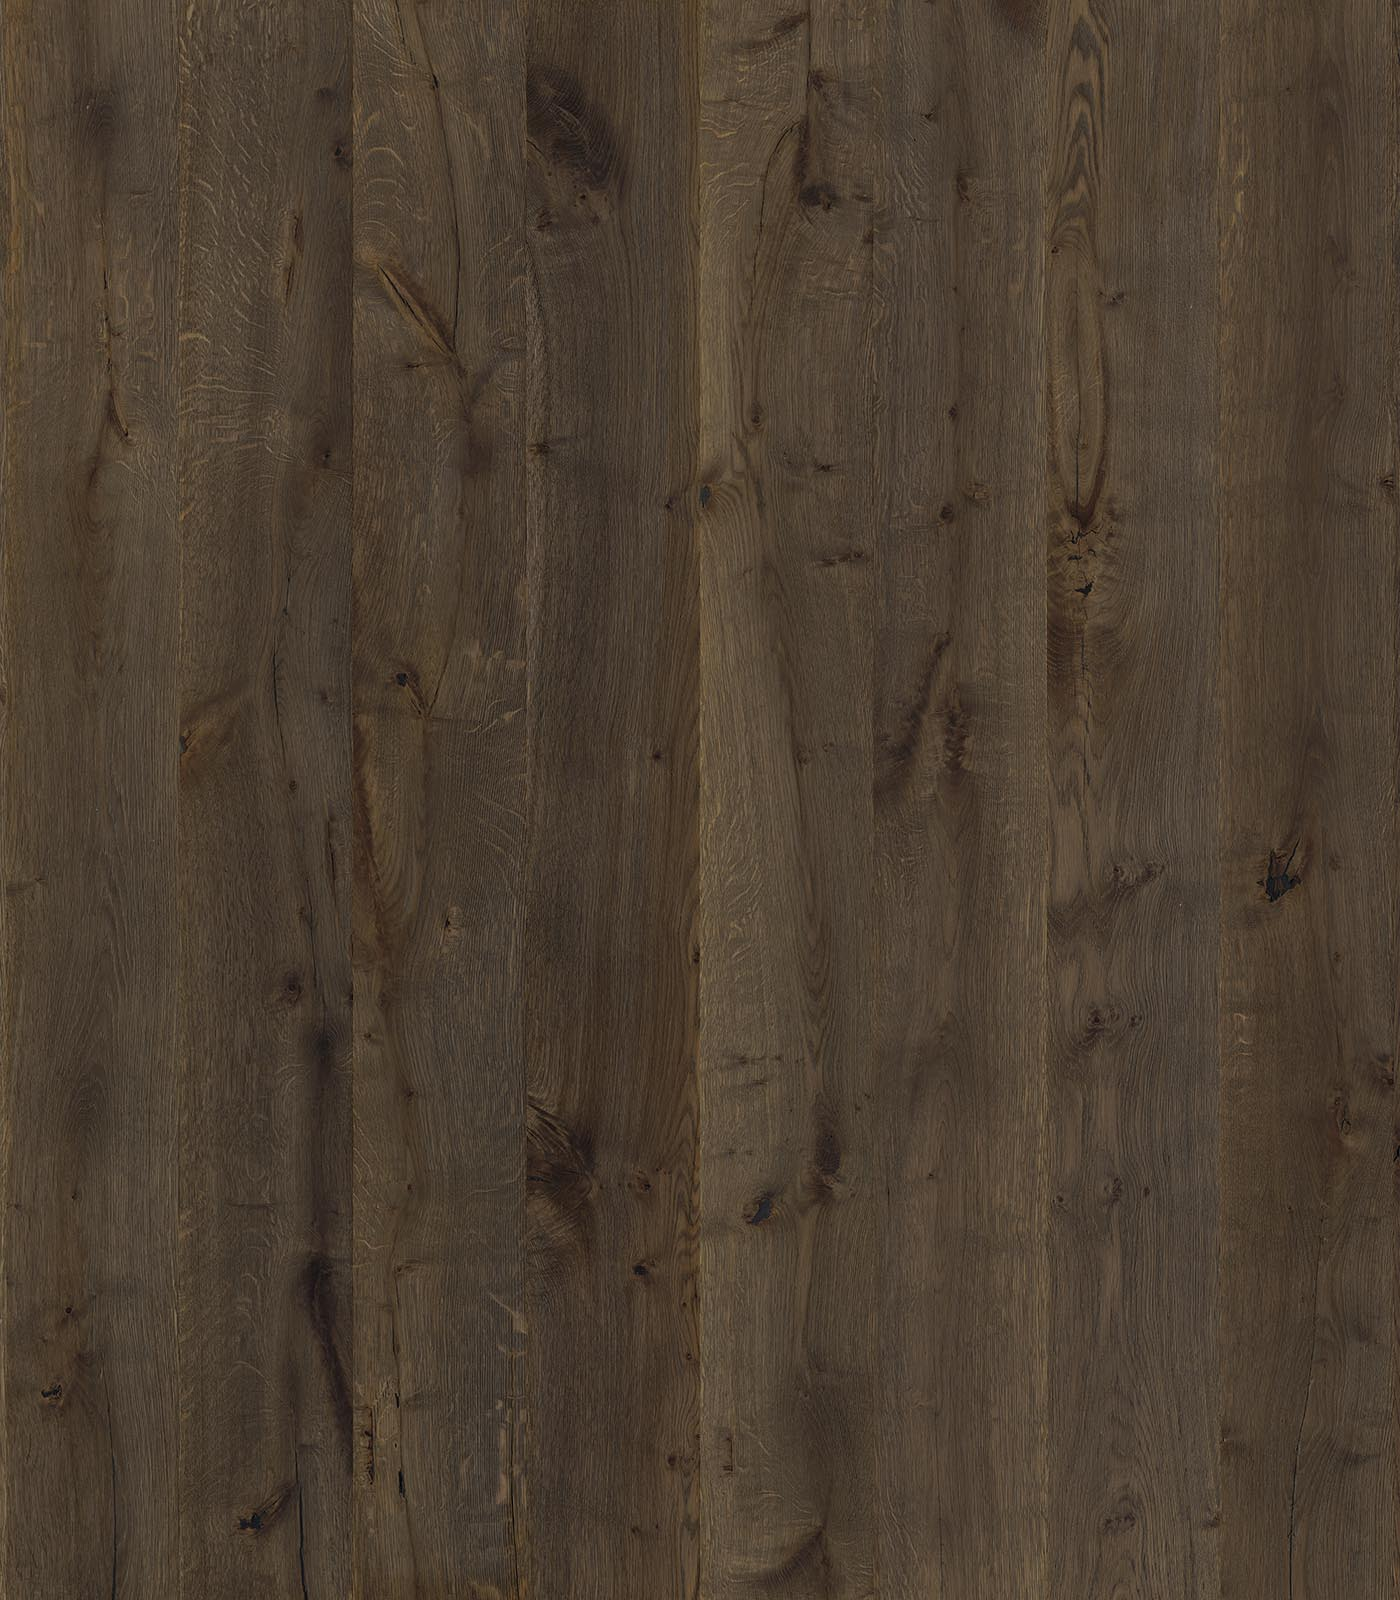 Christchurch-European Oak Floors-Variante Collection-flat